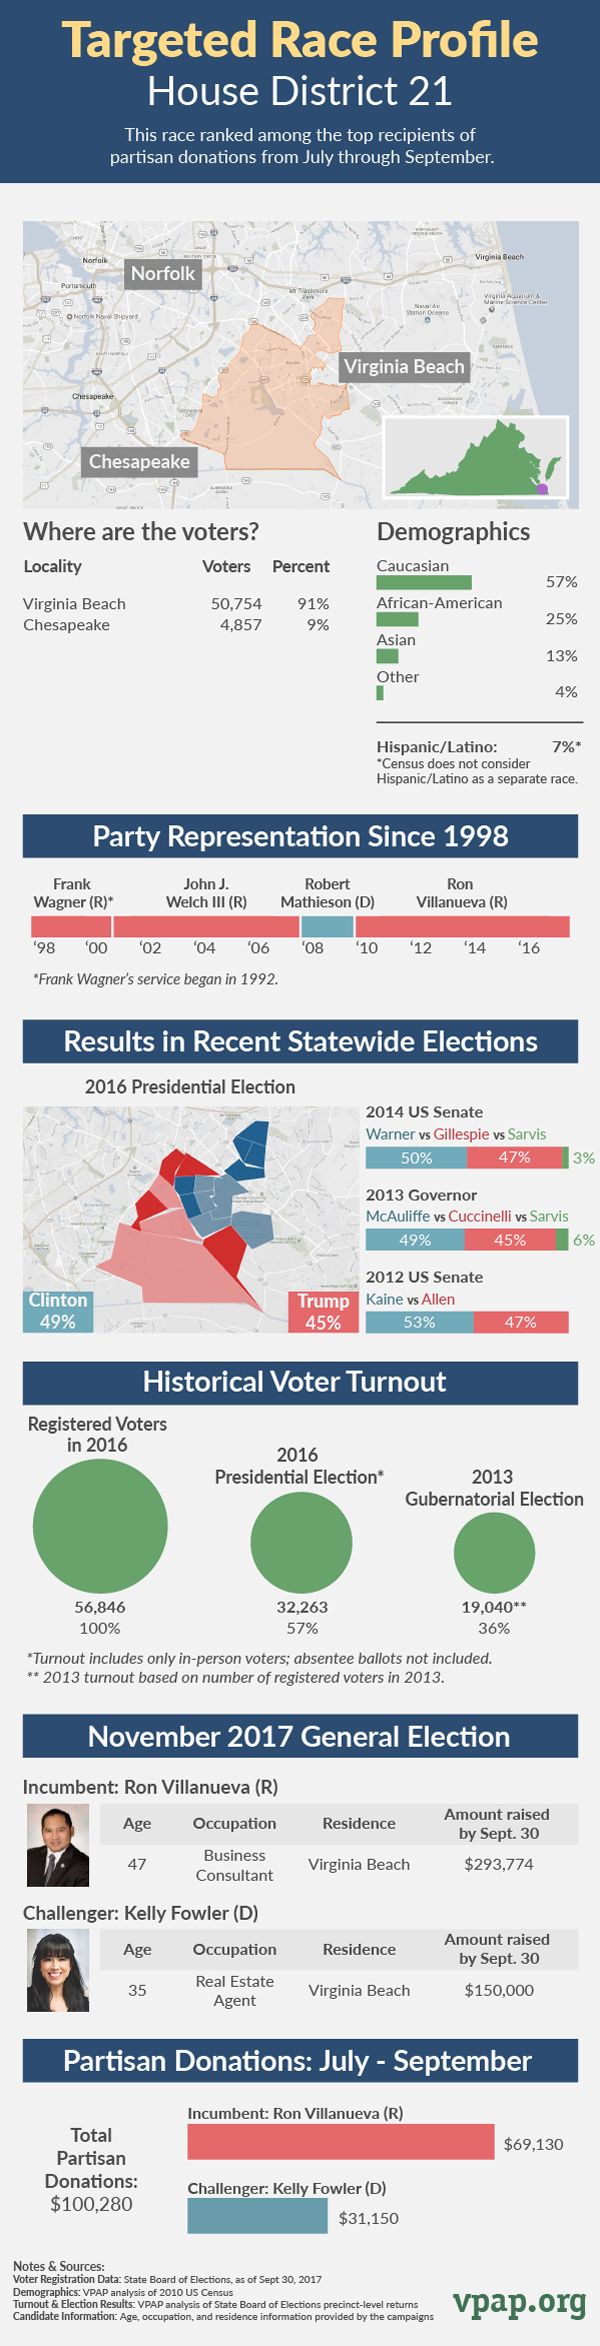 Targeted Race Profile: House District 21